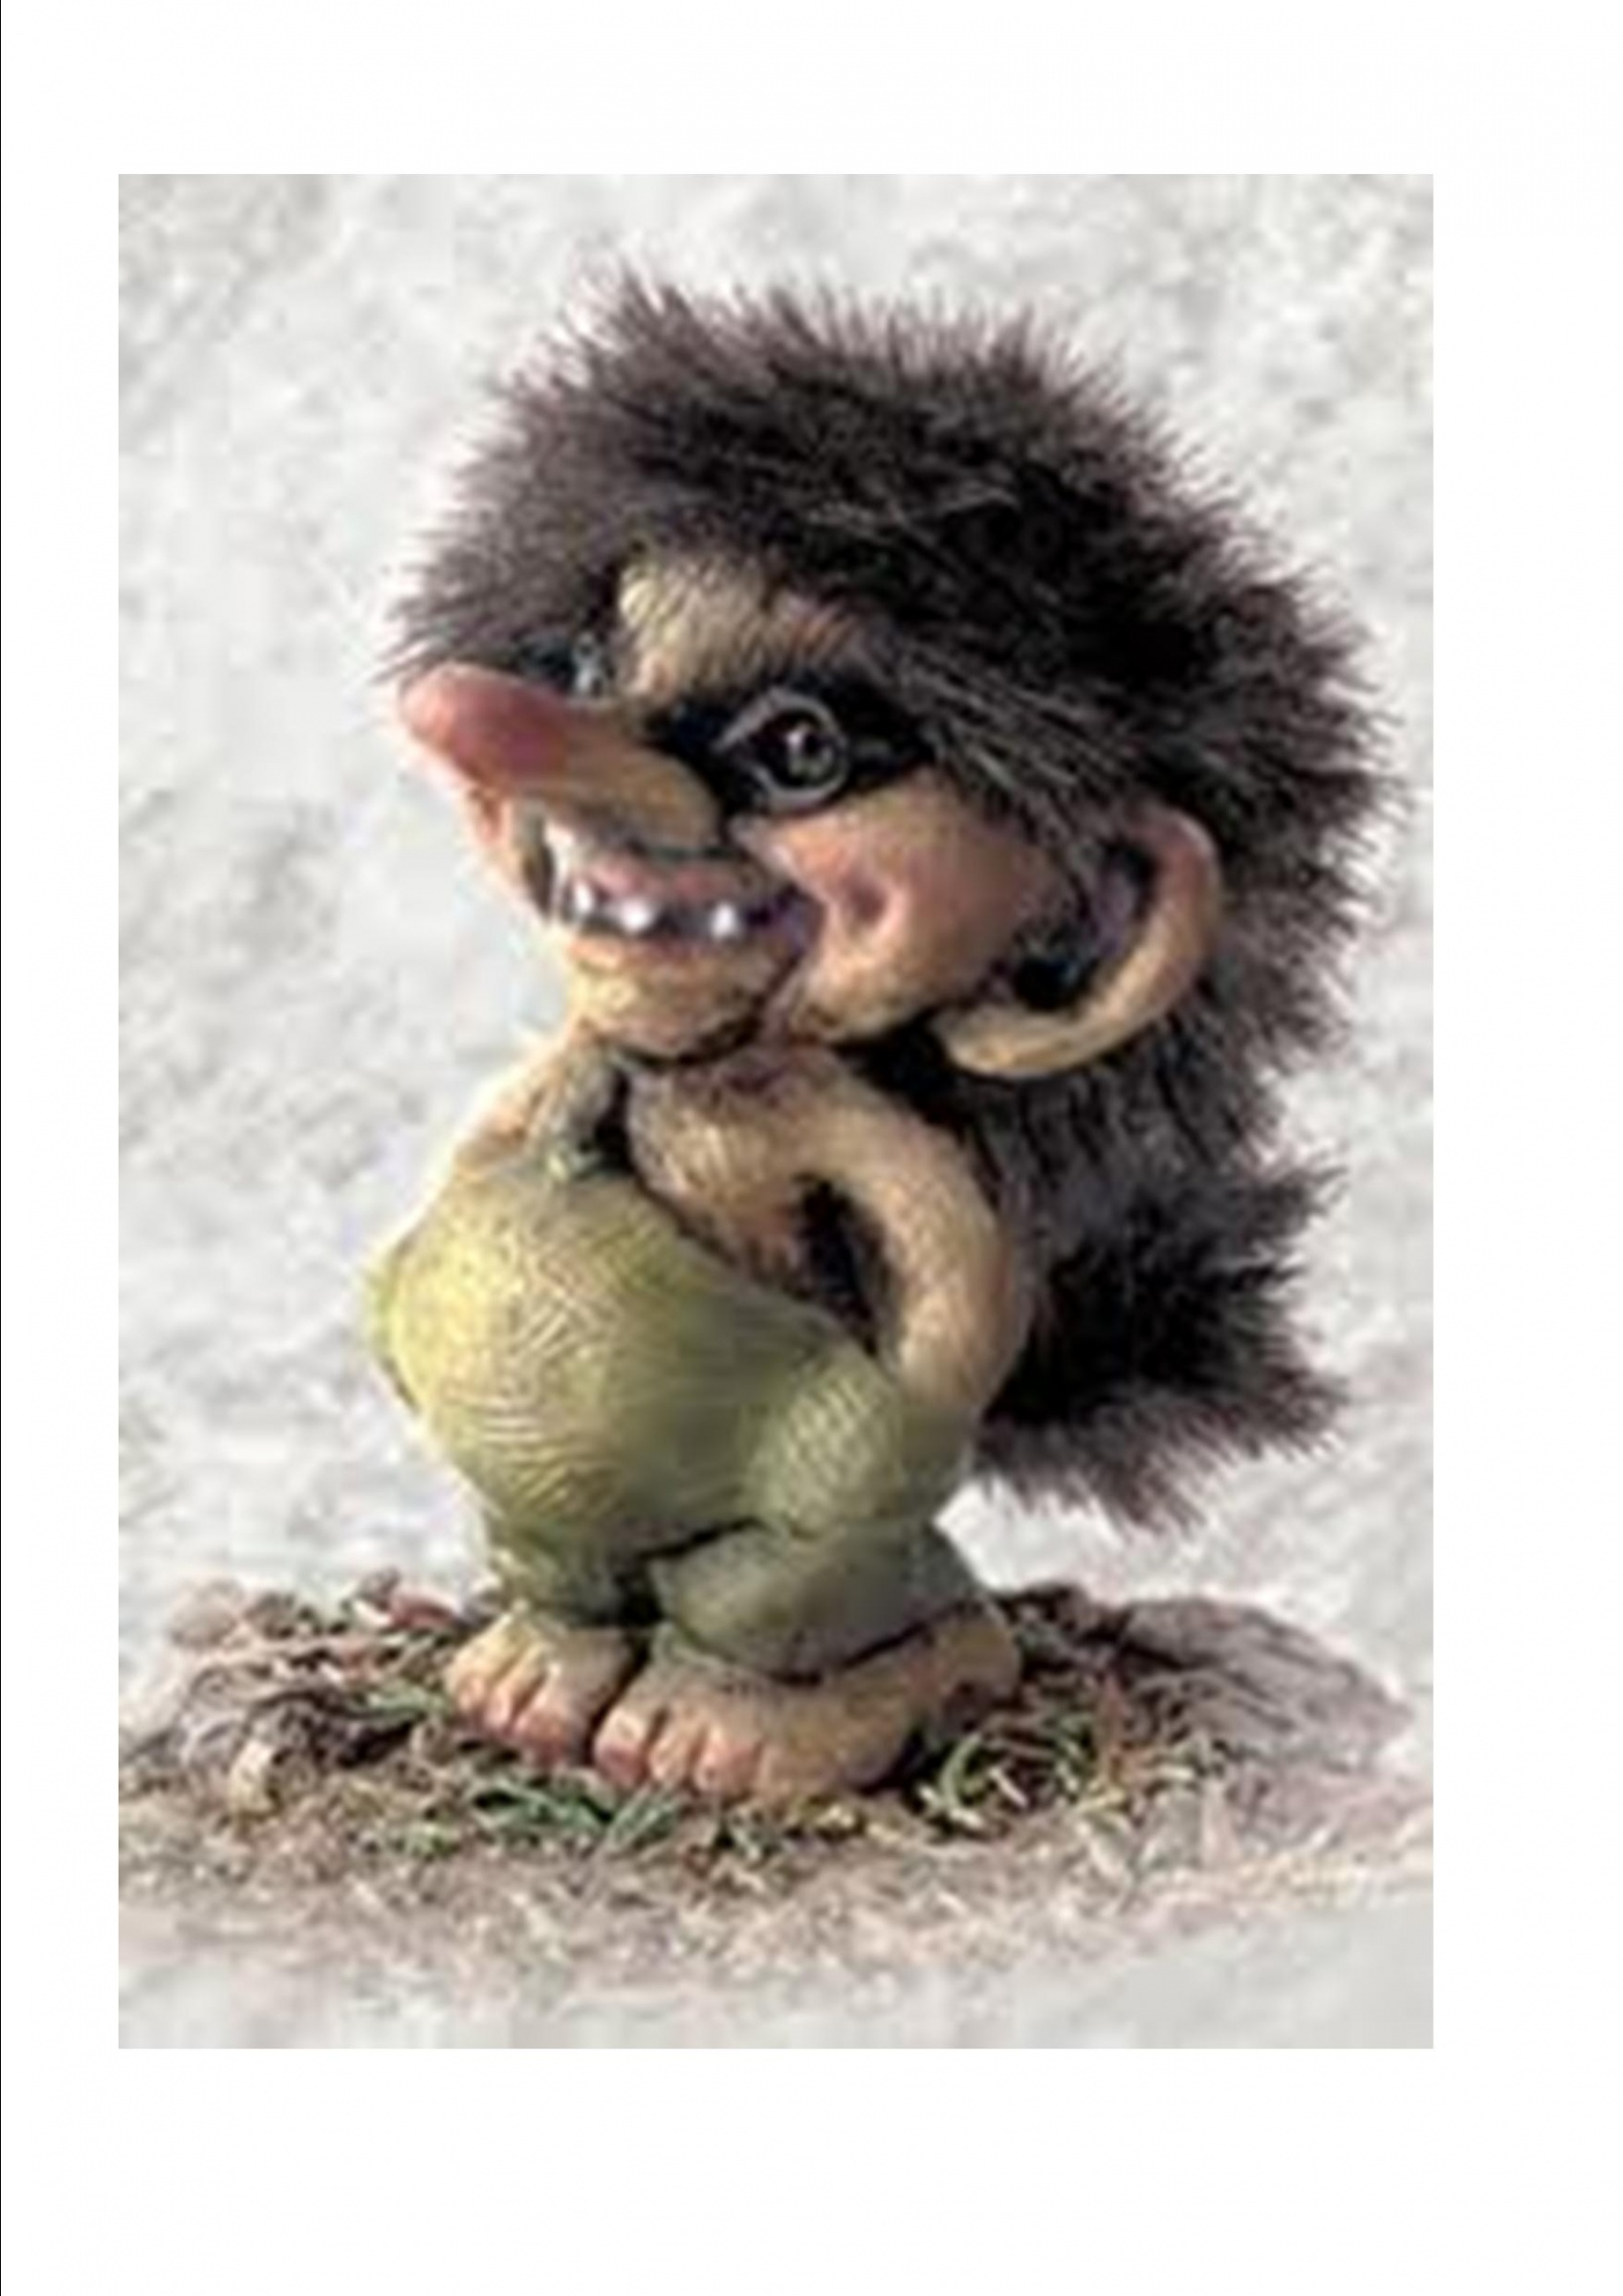 Click image for larger version  Name:troll.jpg Views:101 Size:510.8 KB ID:4566